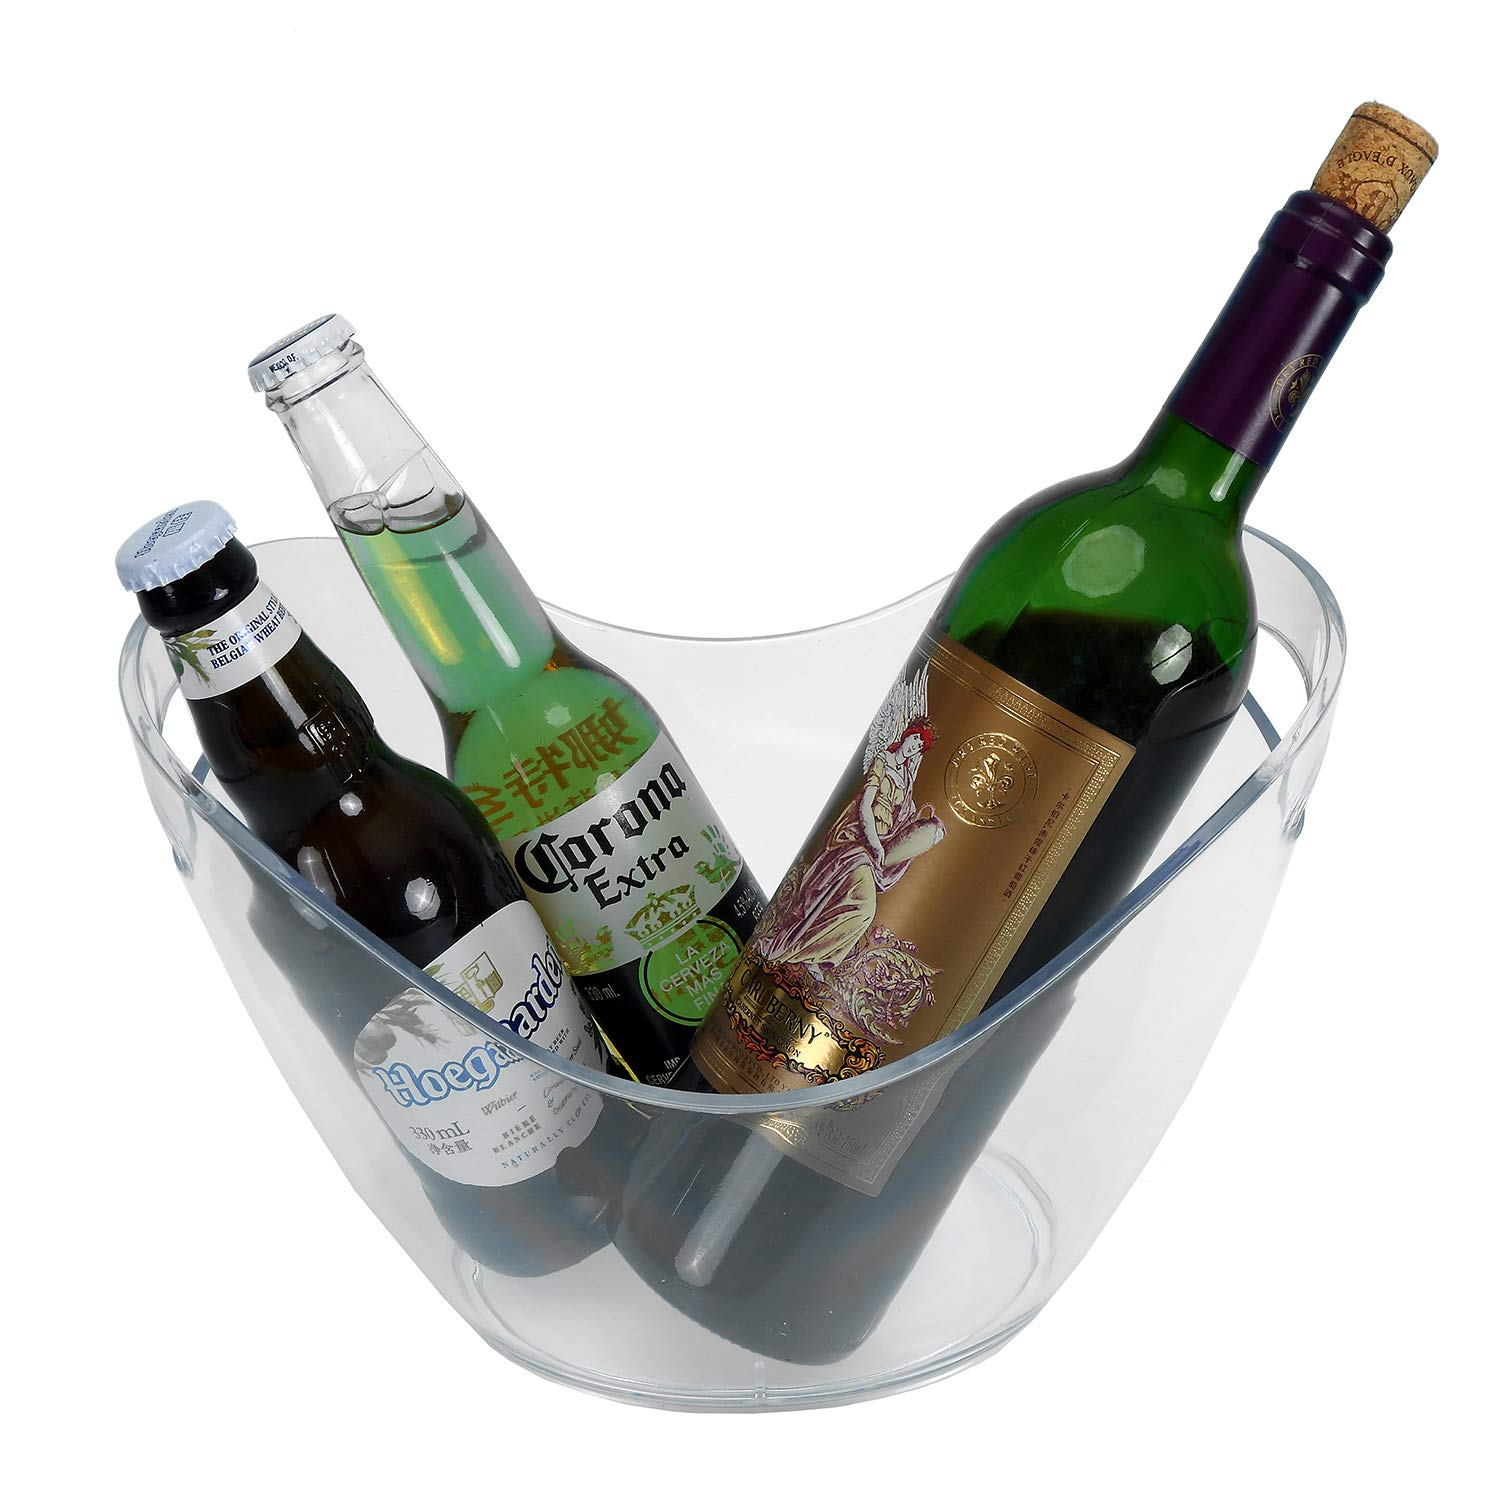 Yesland Ice Bucket Clear Plastic 3.5 Liter Storage Tub Perfect for Wine Champagne or Beer Bottles